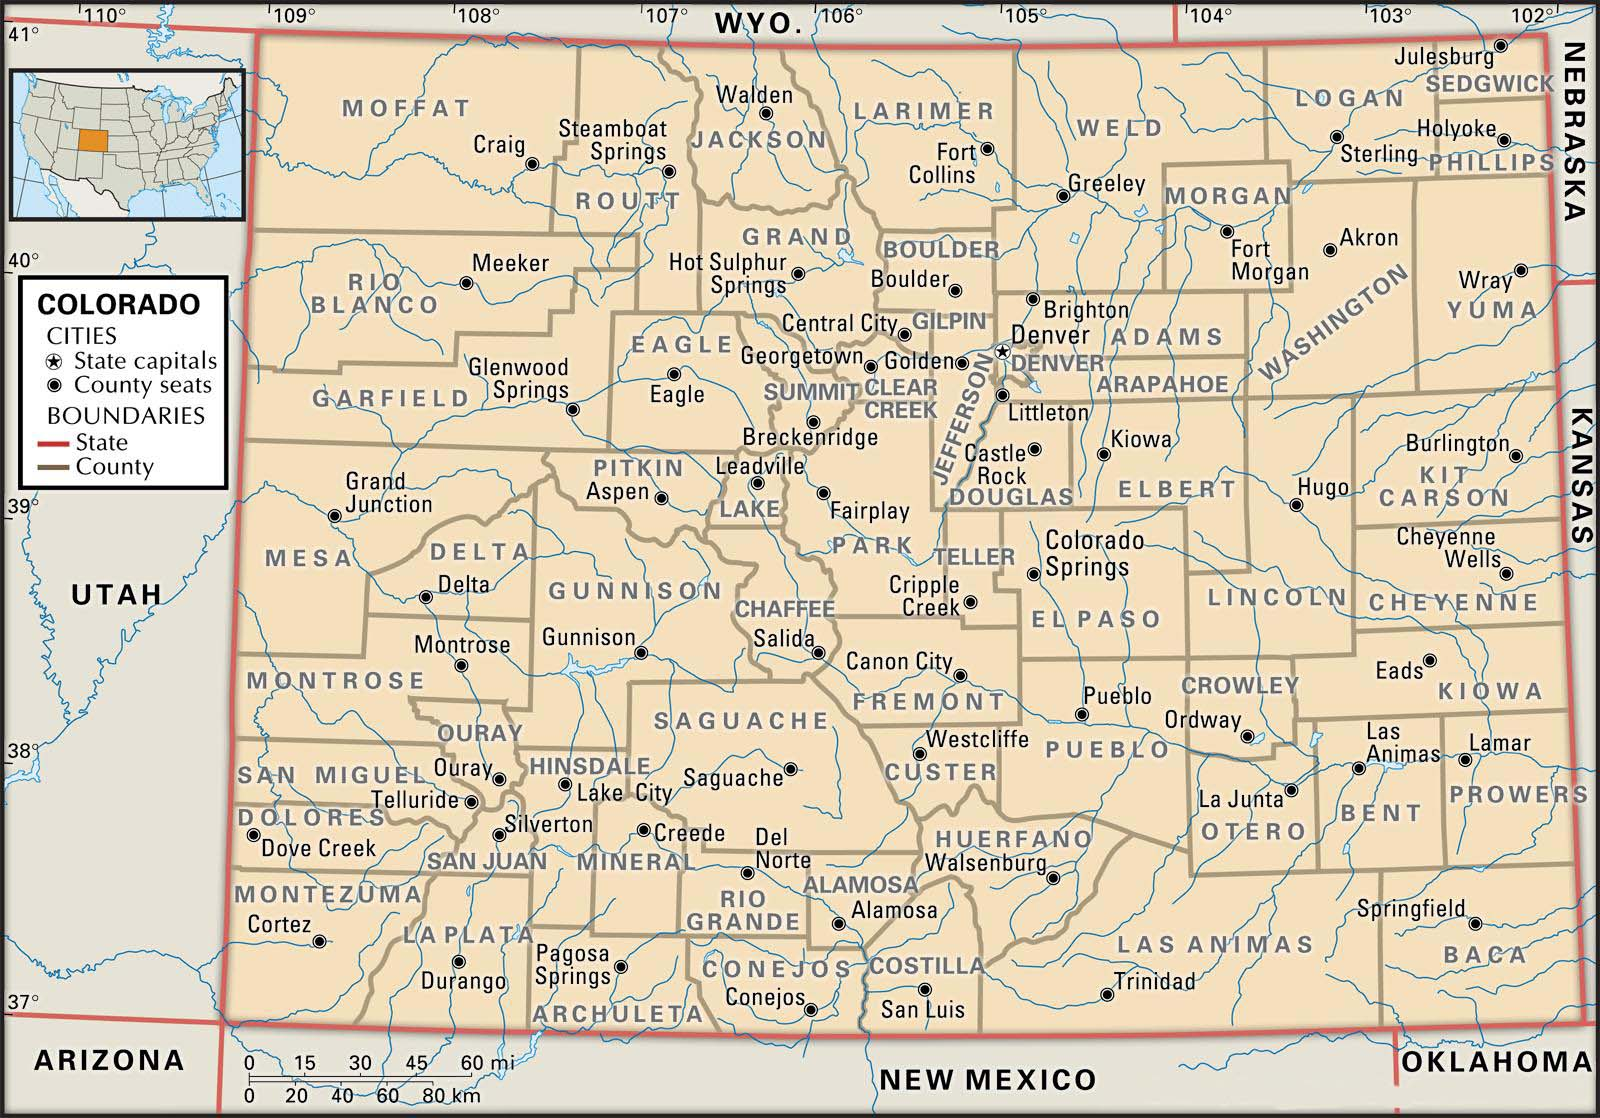 Florida Road Map 2015.State And County Maps Of Colorado